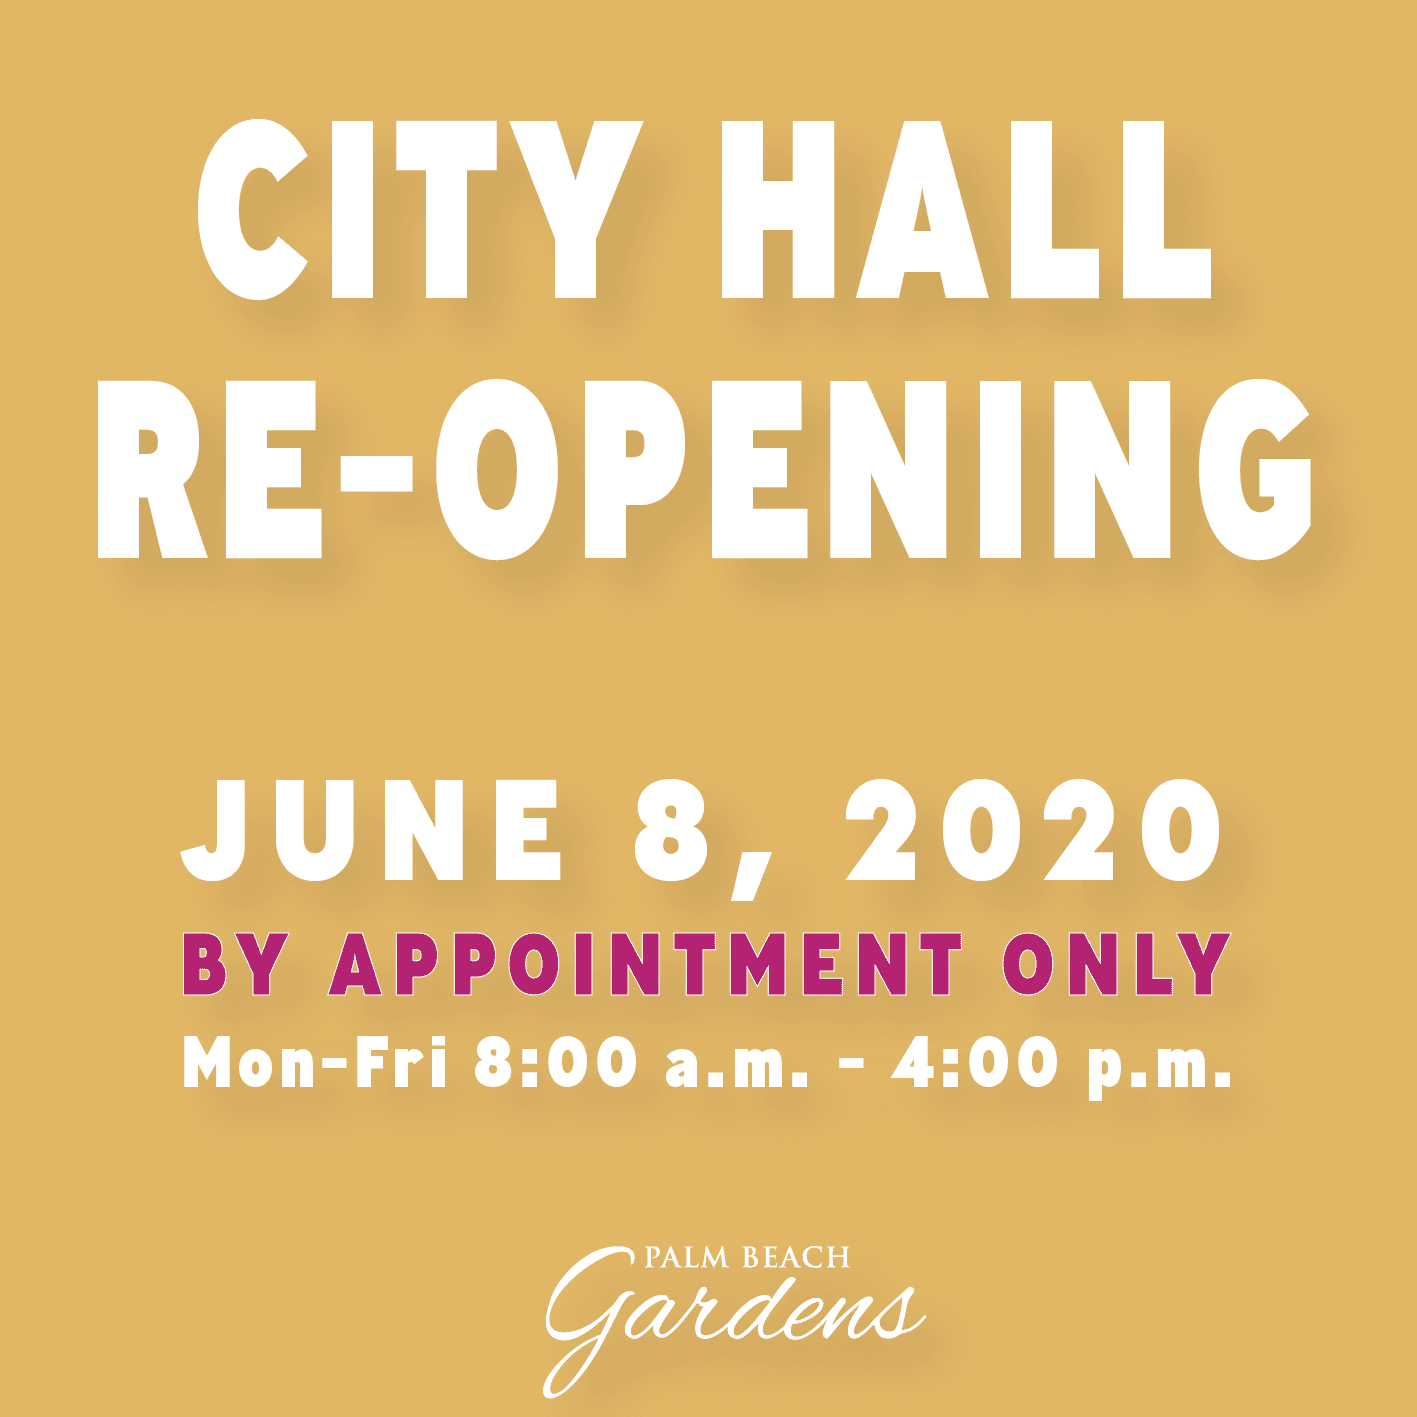 City Hall Re-opening June 8